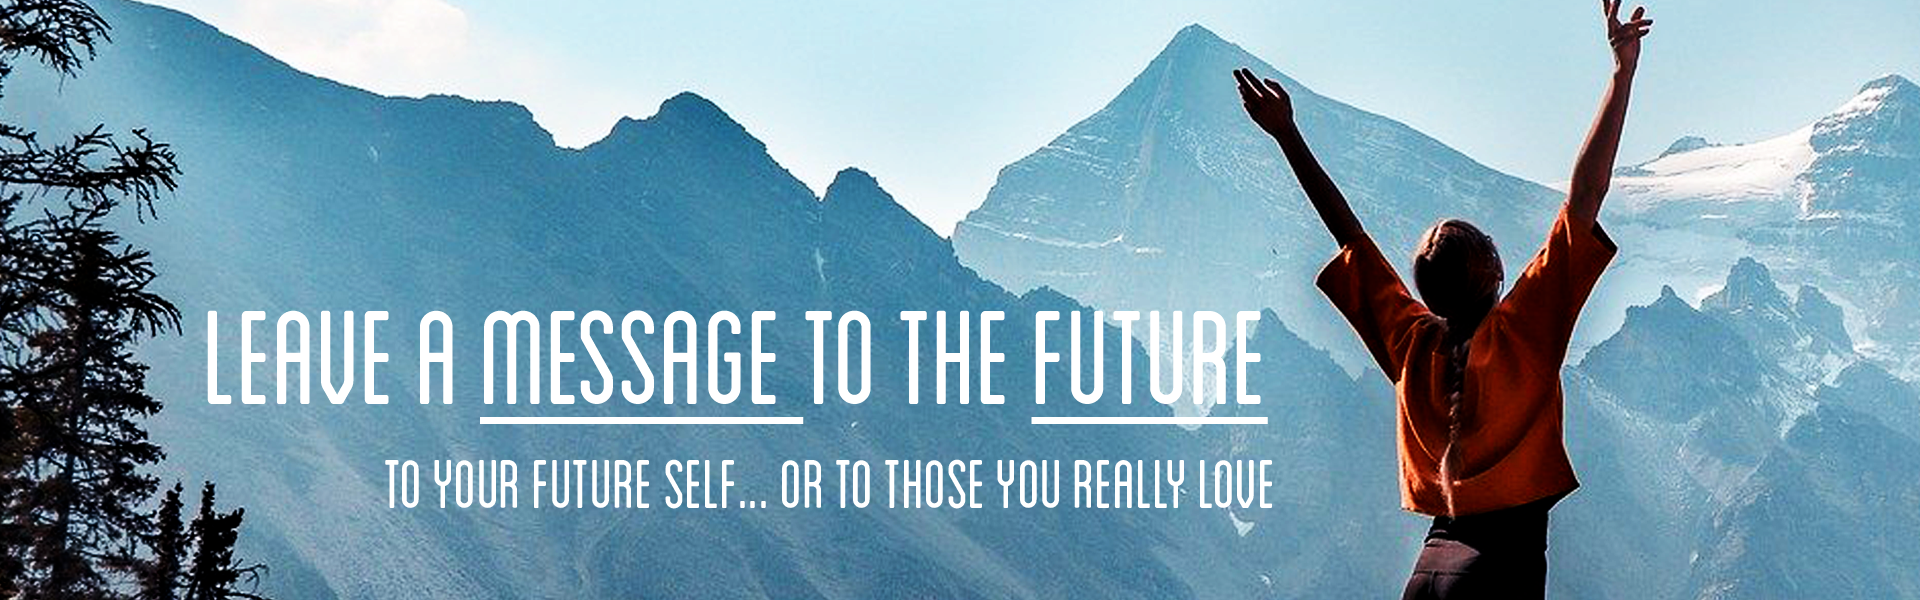 Leave a message to the future